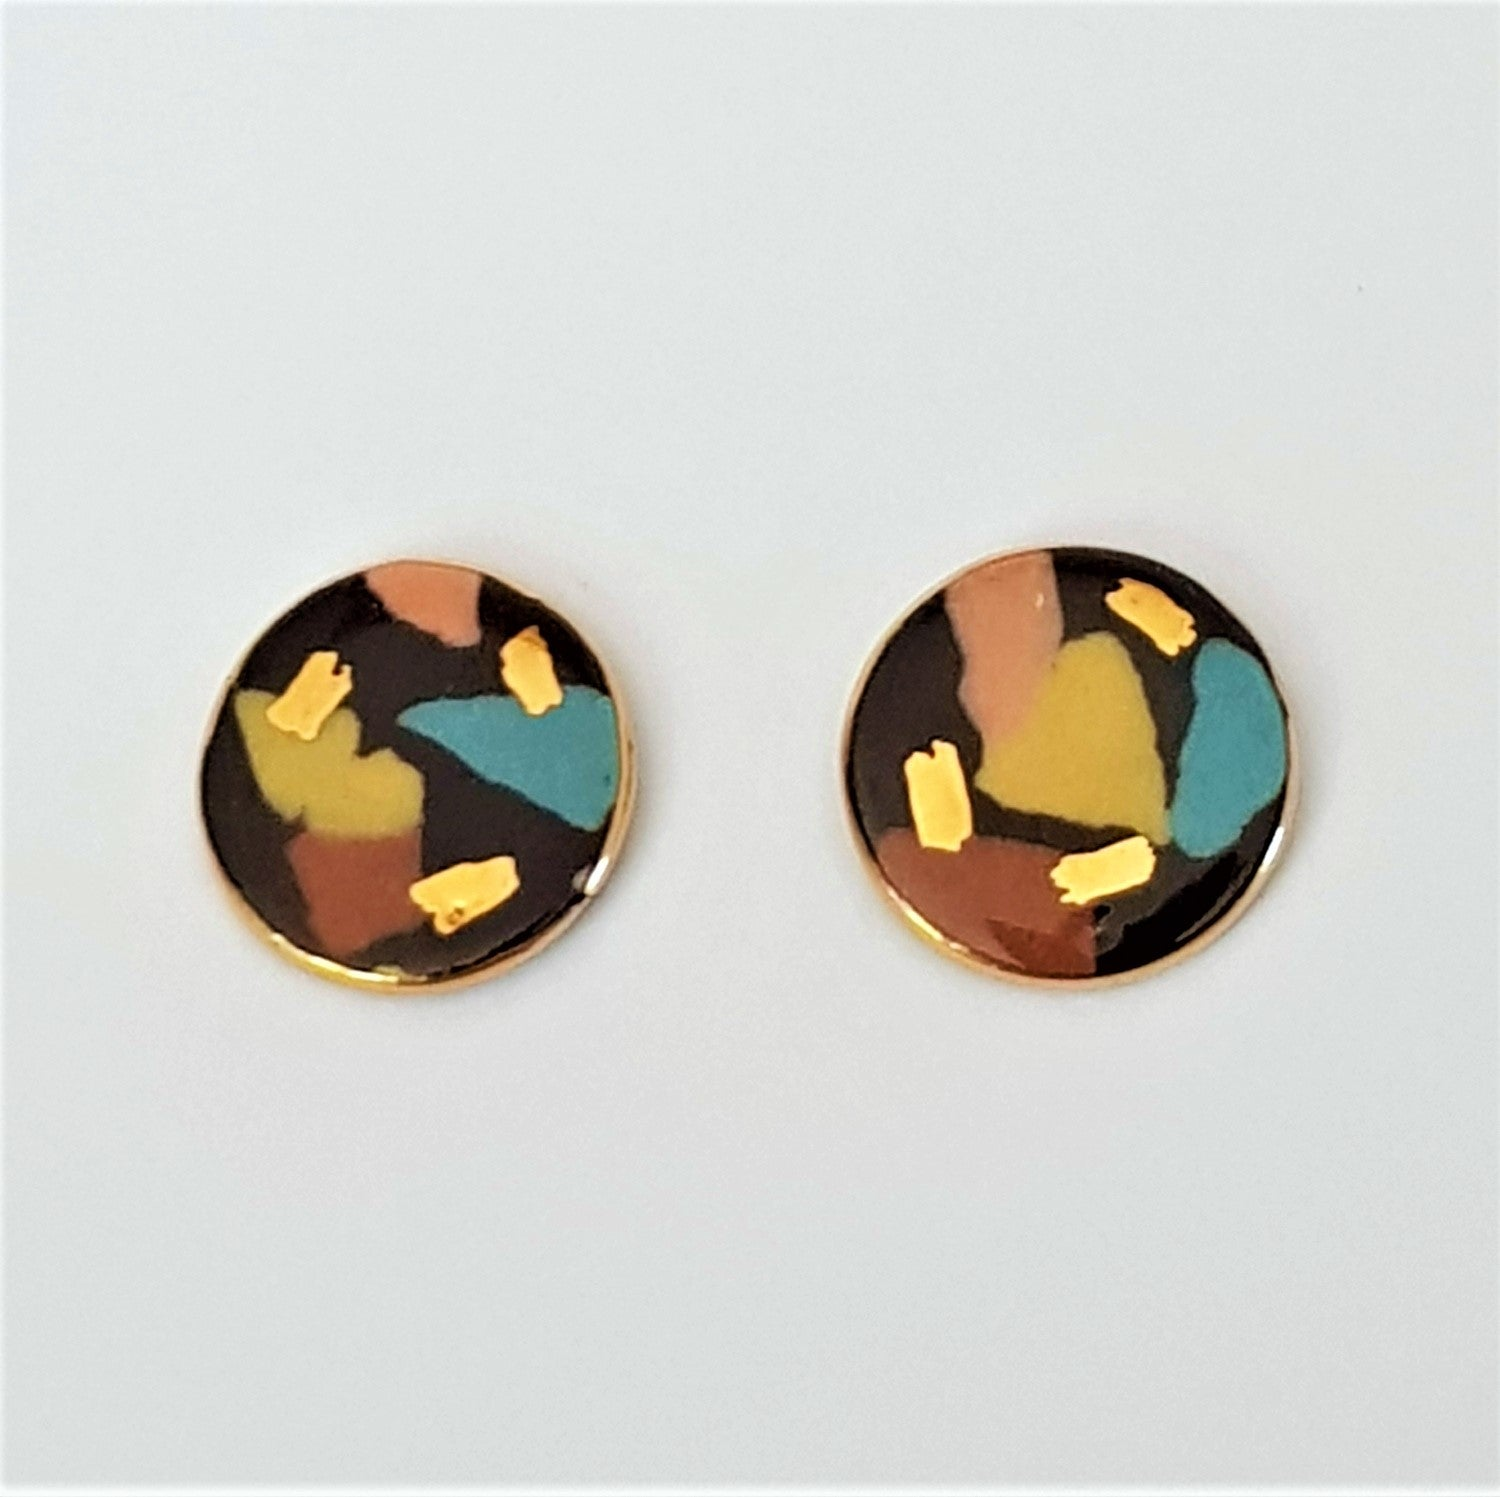 Round stud earrings in black with terrazzo effect and 22 kt gold.